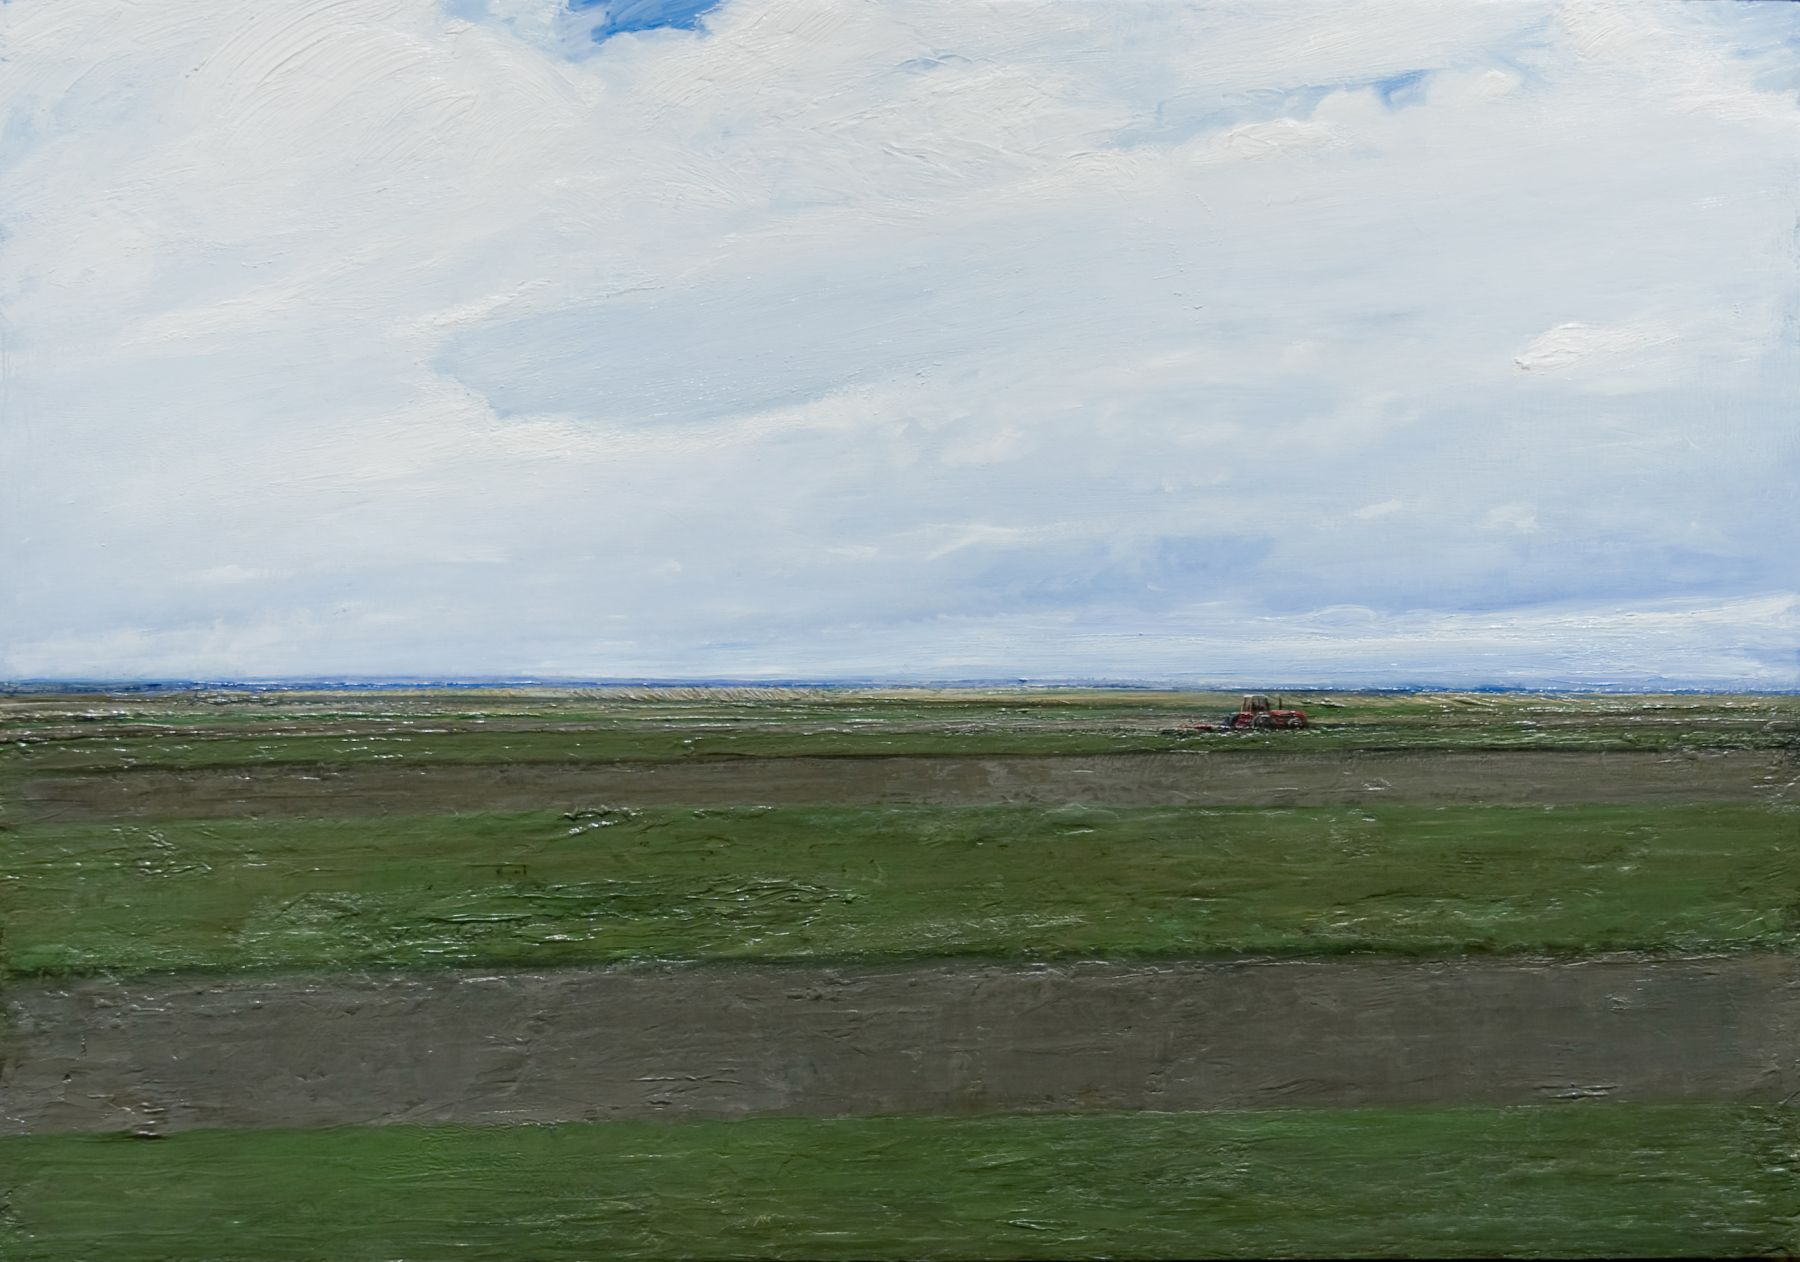 william beckman, Strip Plowing, 2009, oil on panel, 18 3/8 x 26 1/4 inches